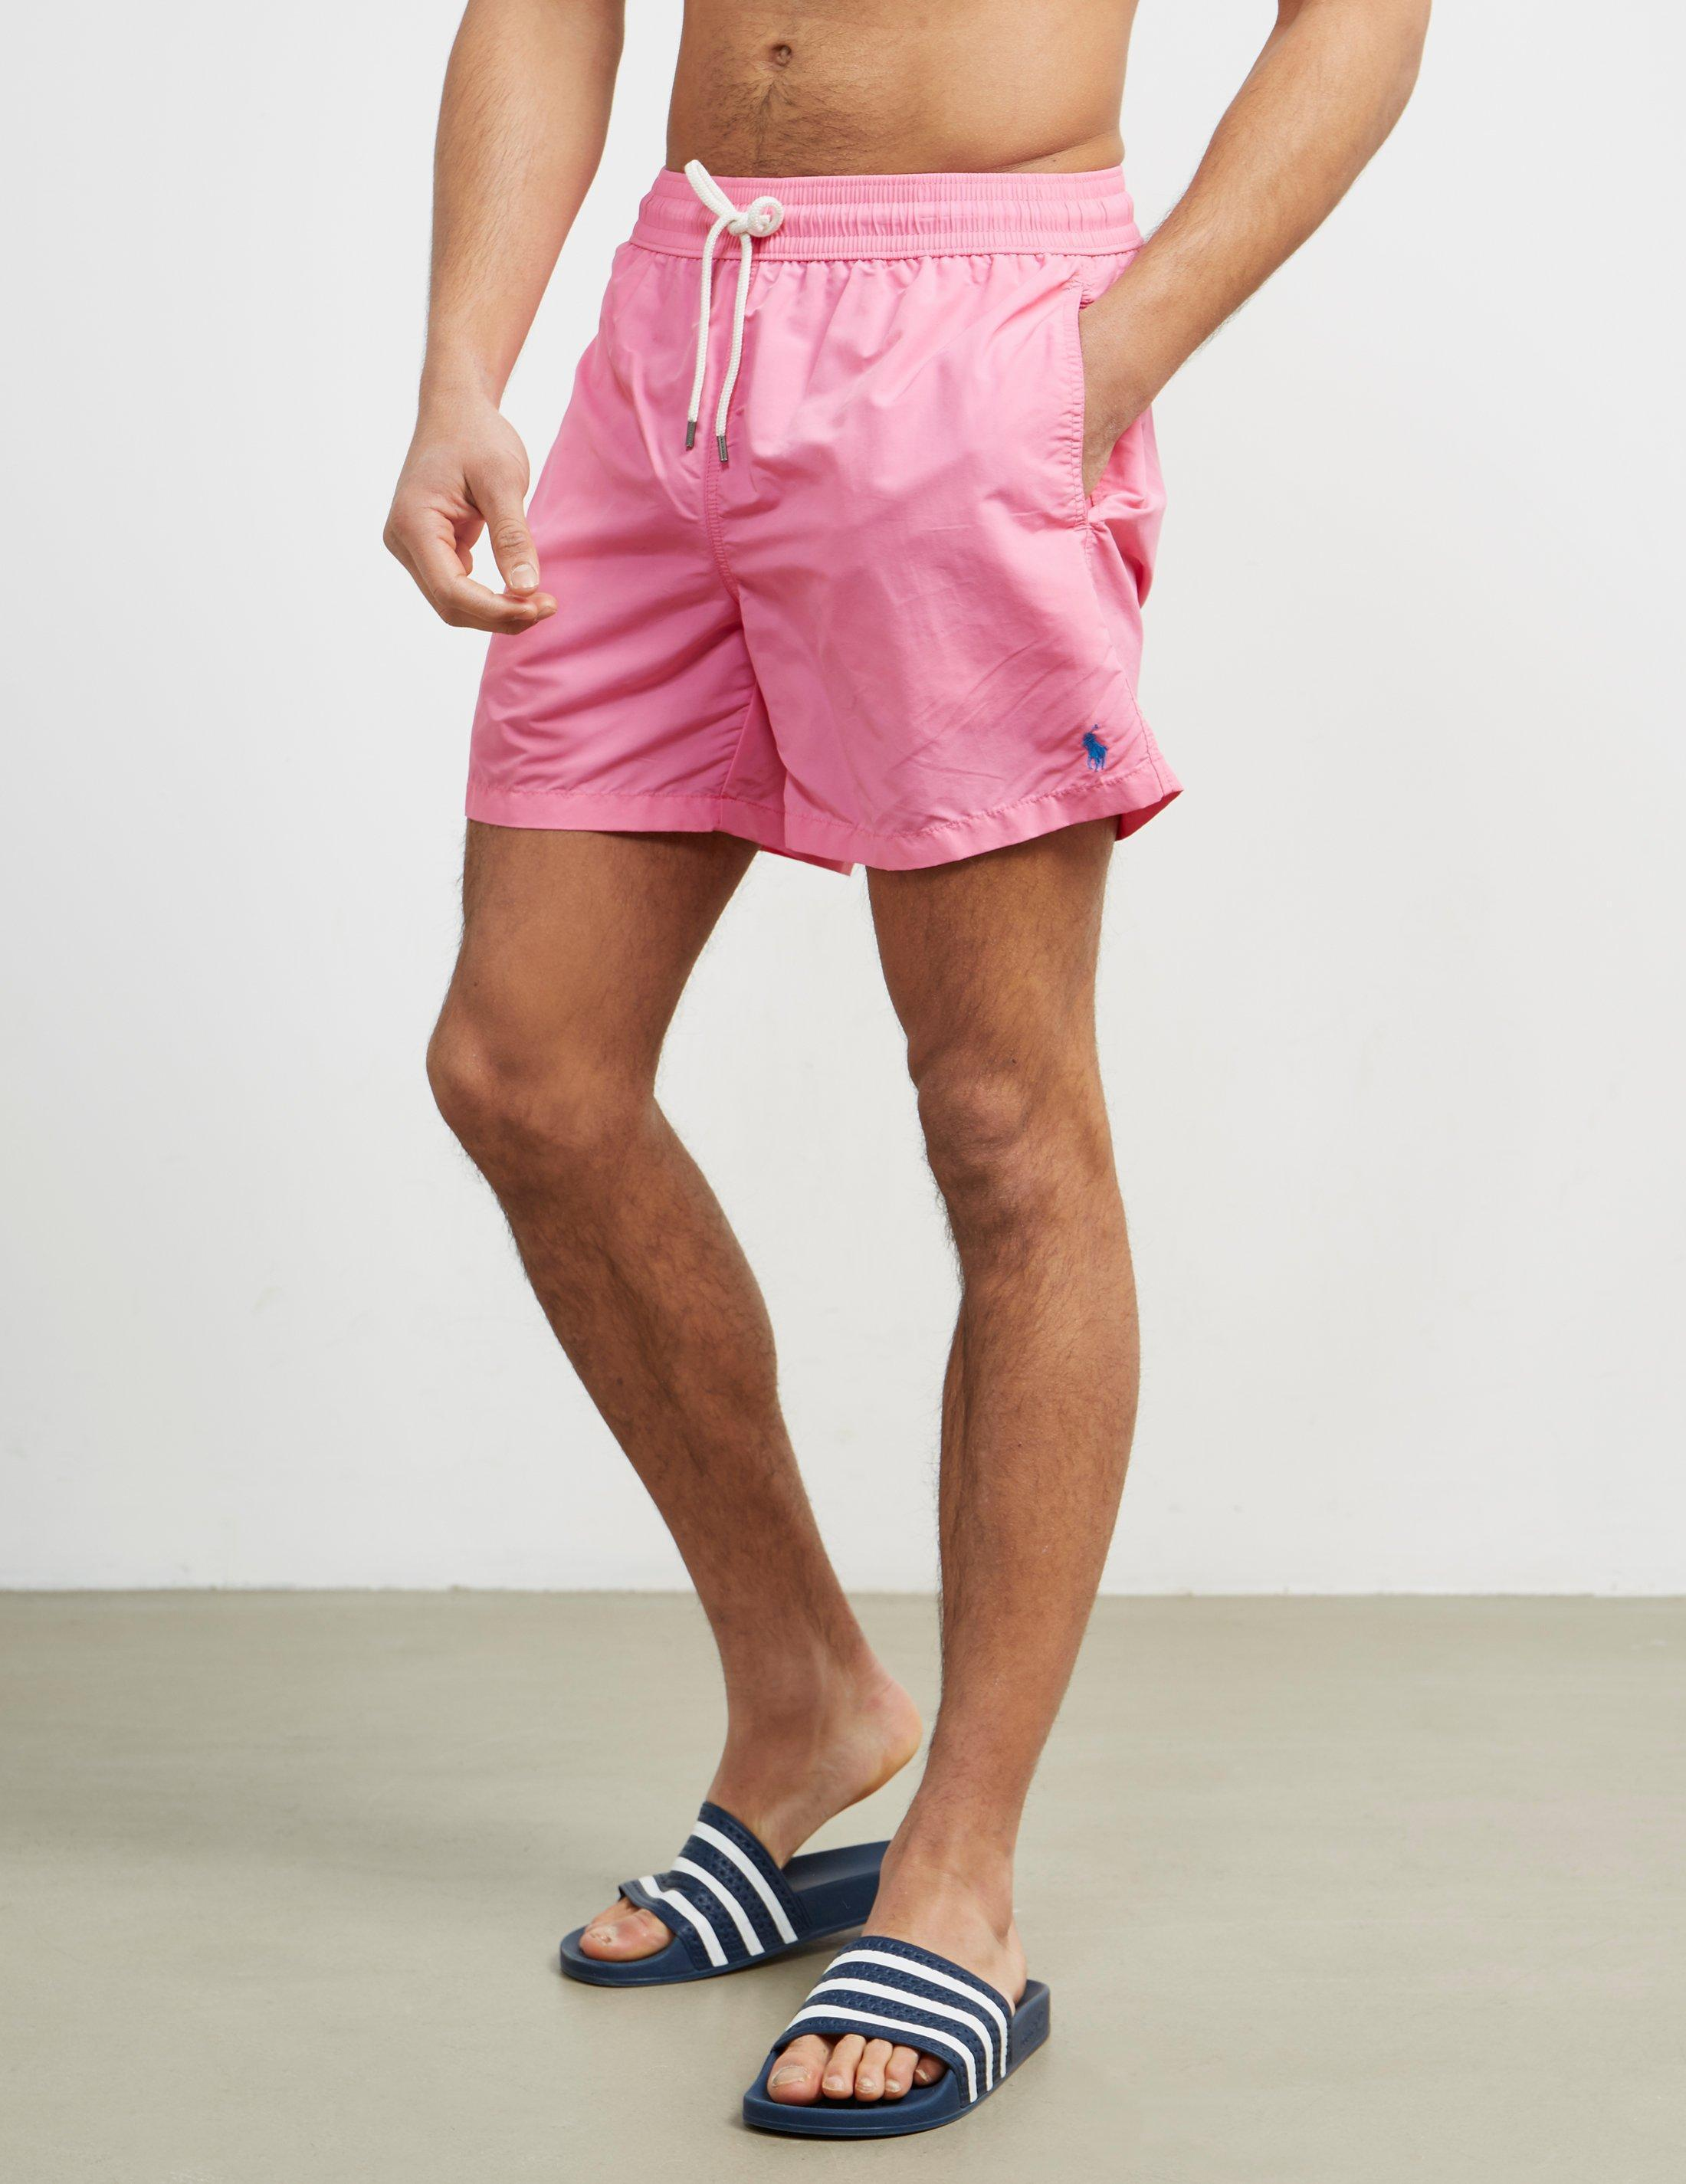 961a7c27d2 Polo Ralph Lauren Mens Basic Swim Shorts Pink in Pink for Men - Lyst